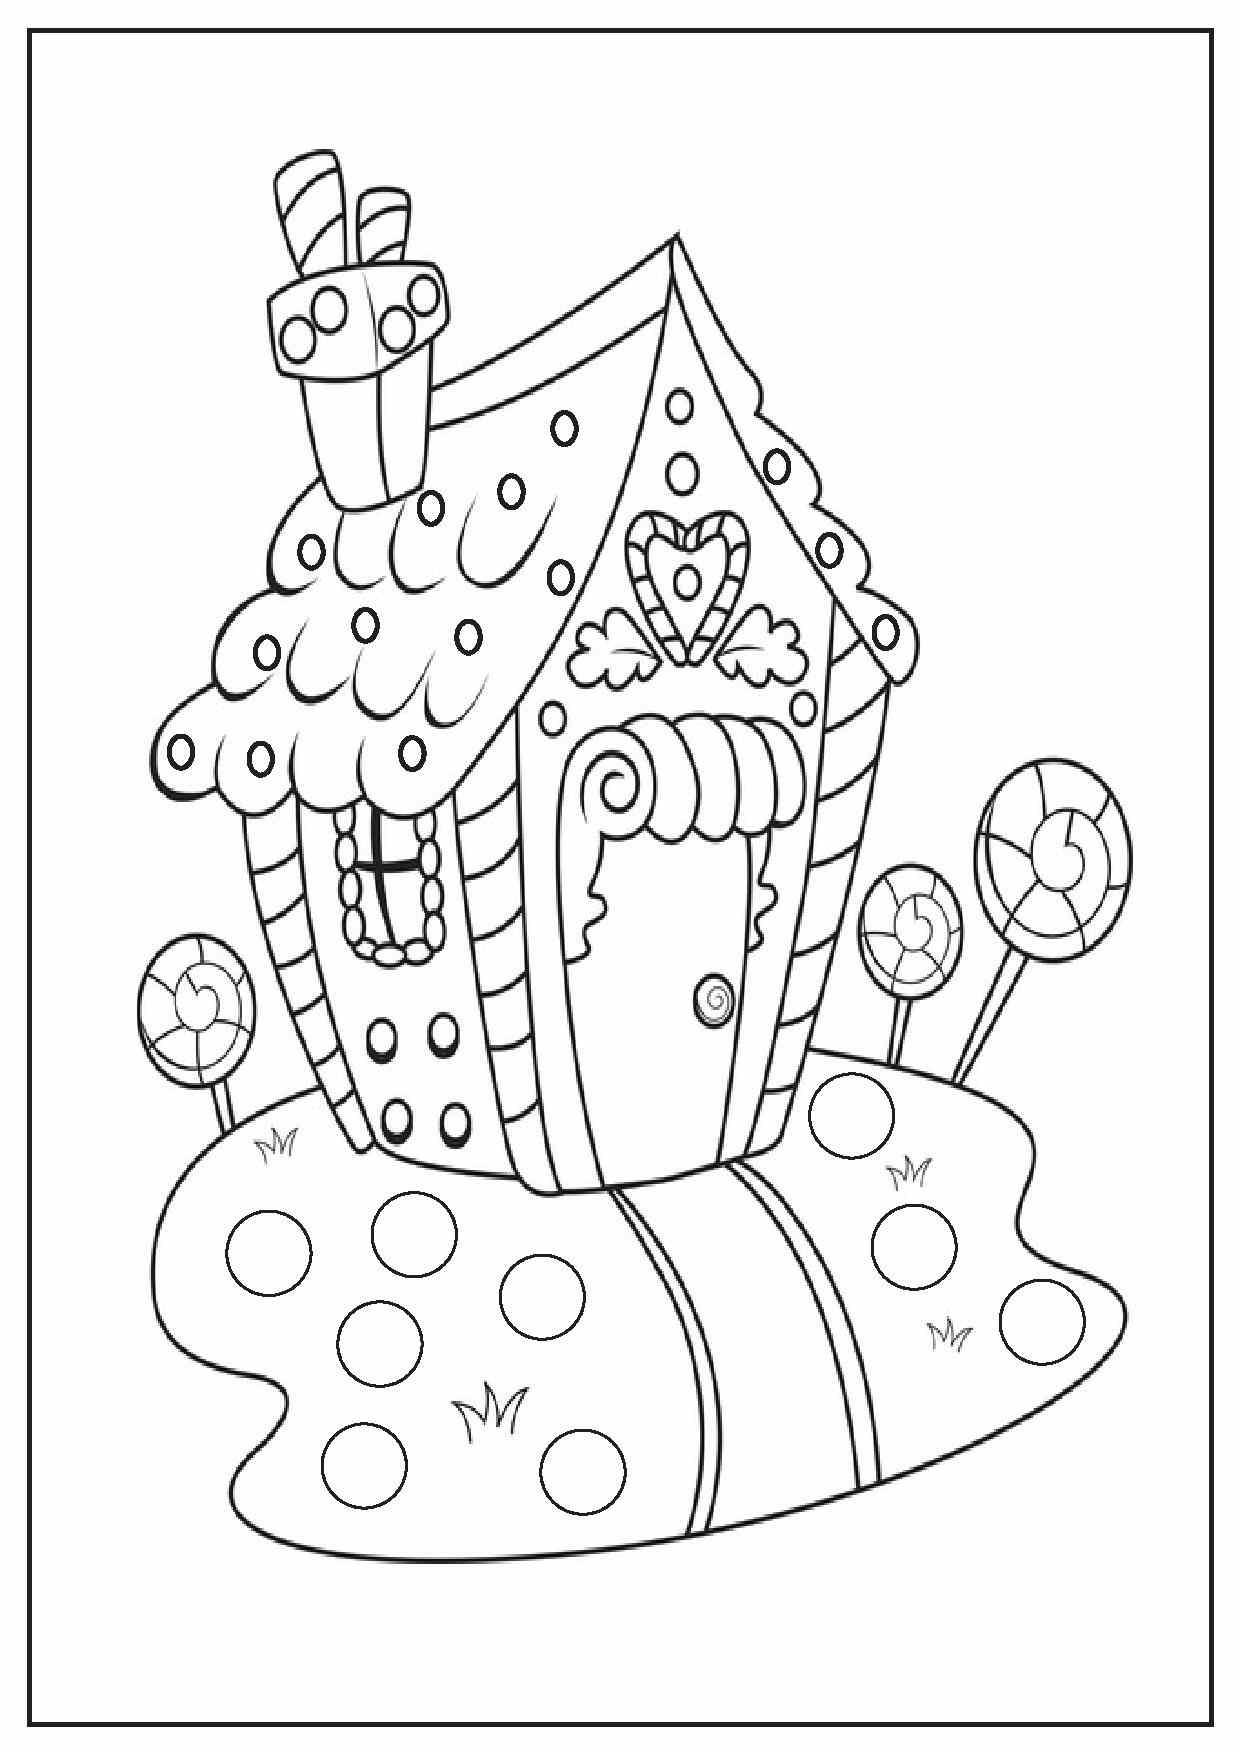 Christmas Colouring Pages Year 1 With Coloring Printable